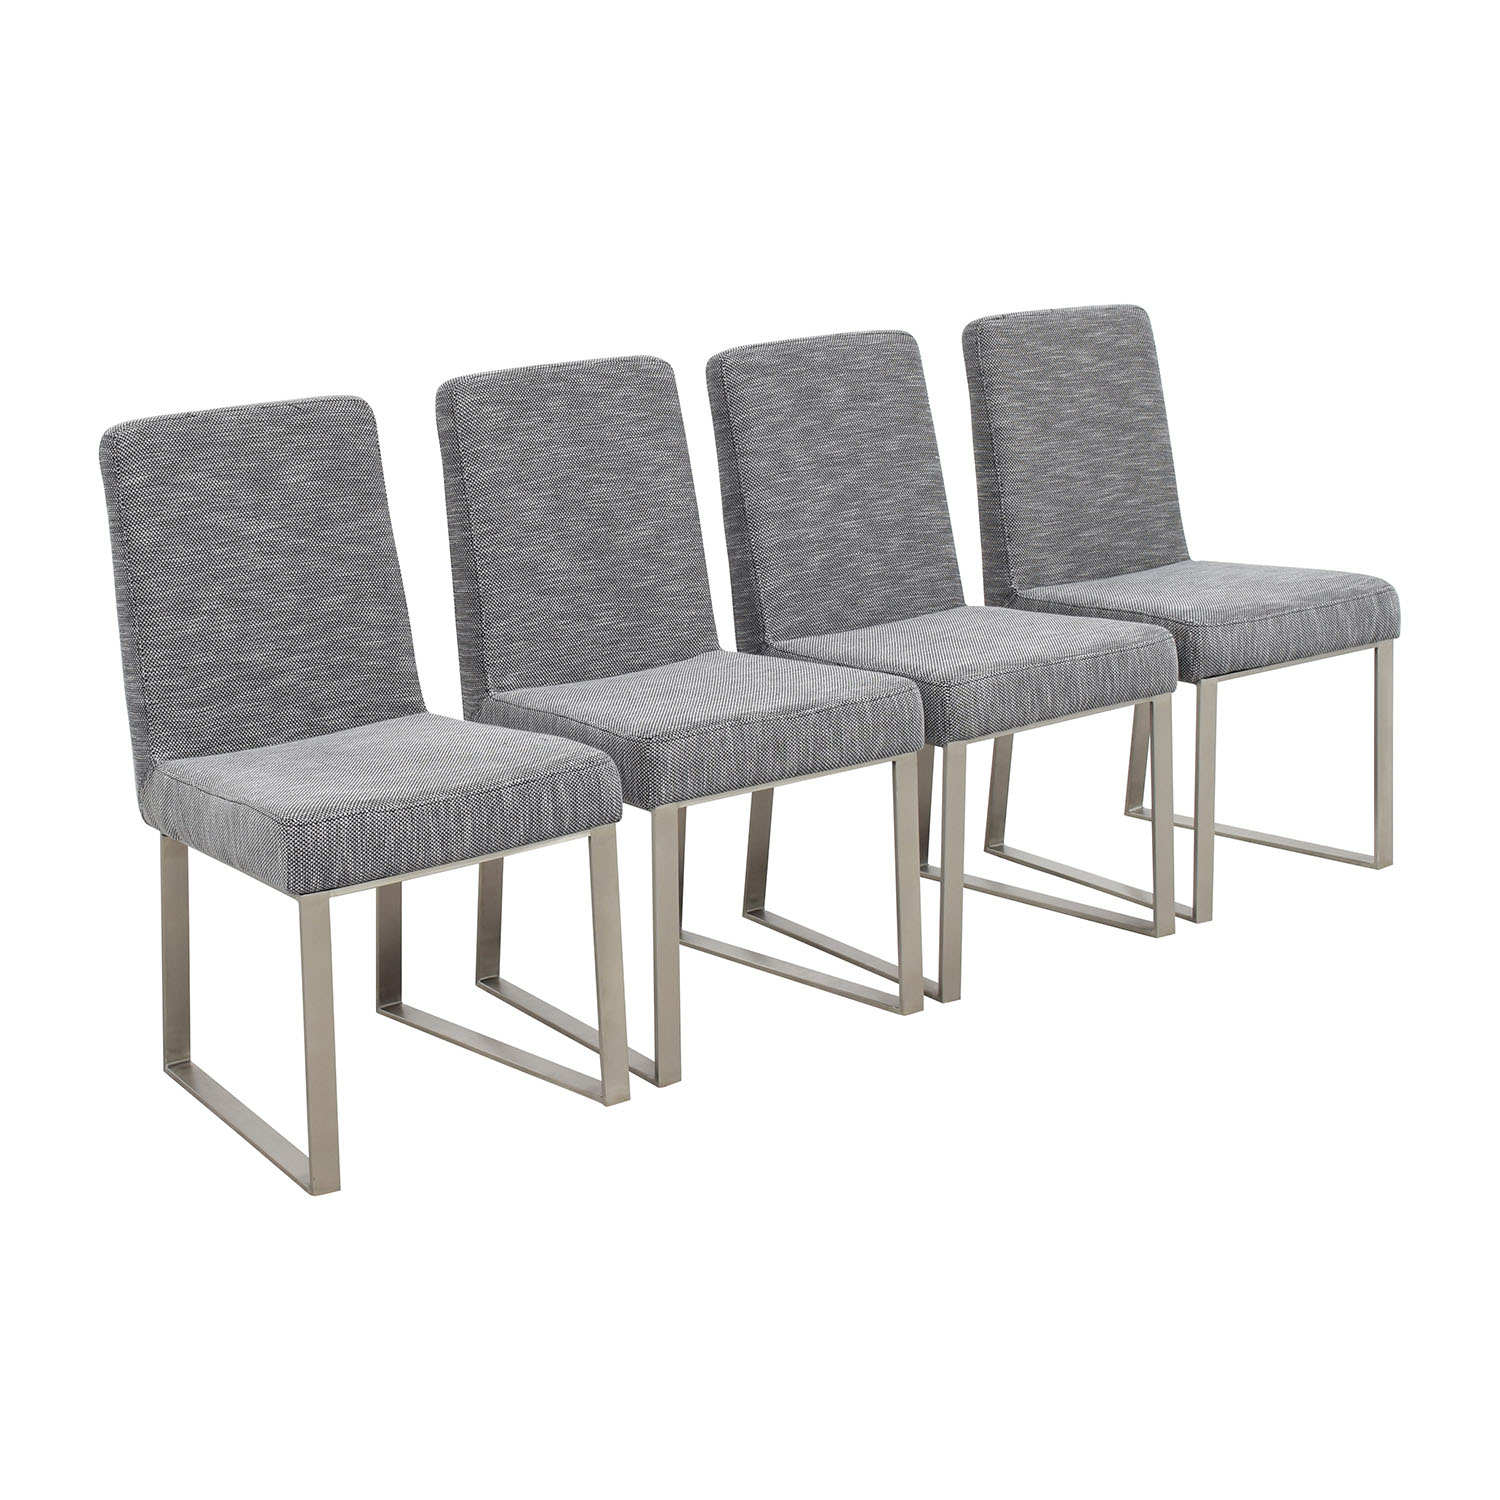 50 off inmod inmod vivo grey chairs chairs for In mod furniture